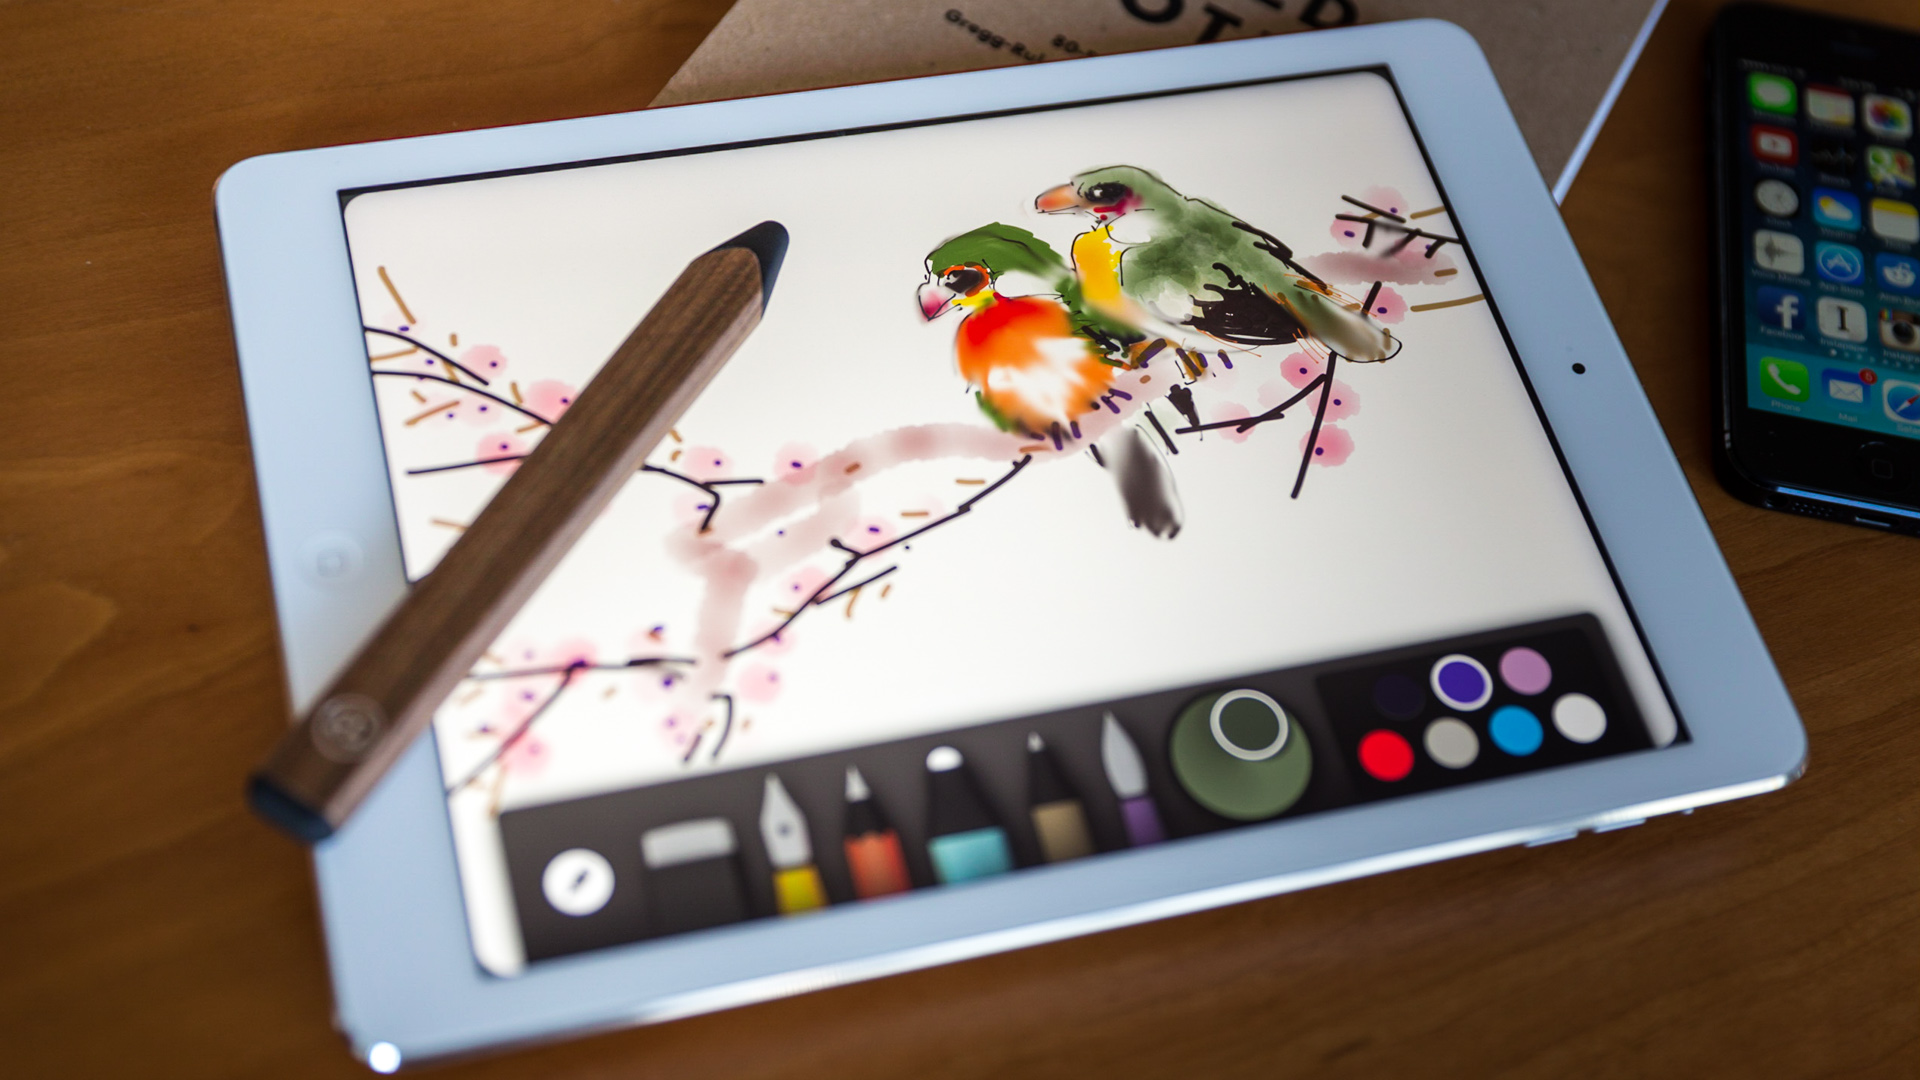 Testing: Pencil Bluetooth iPad Stylus - Tested